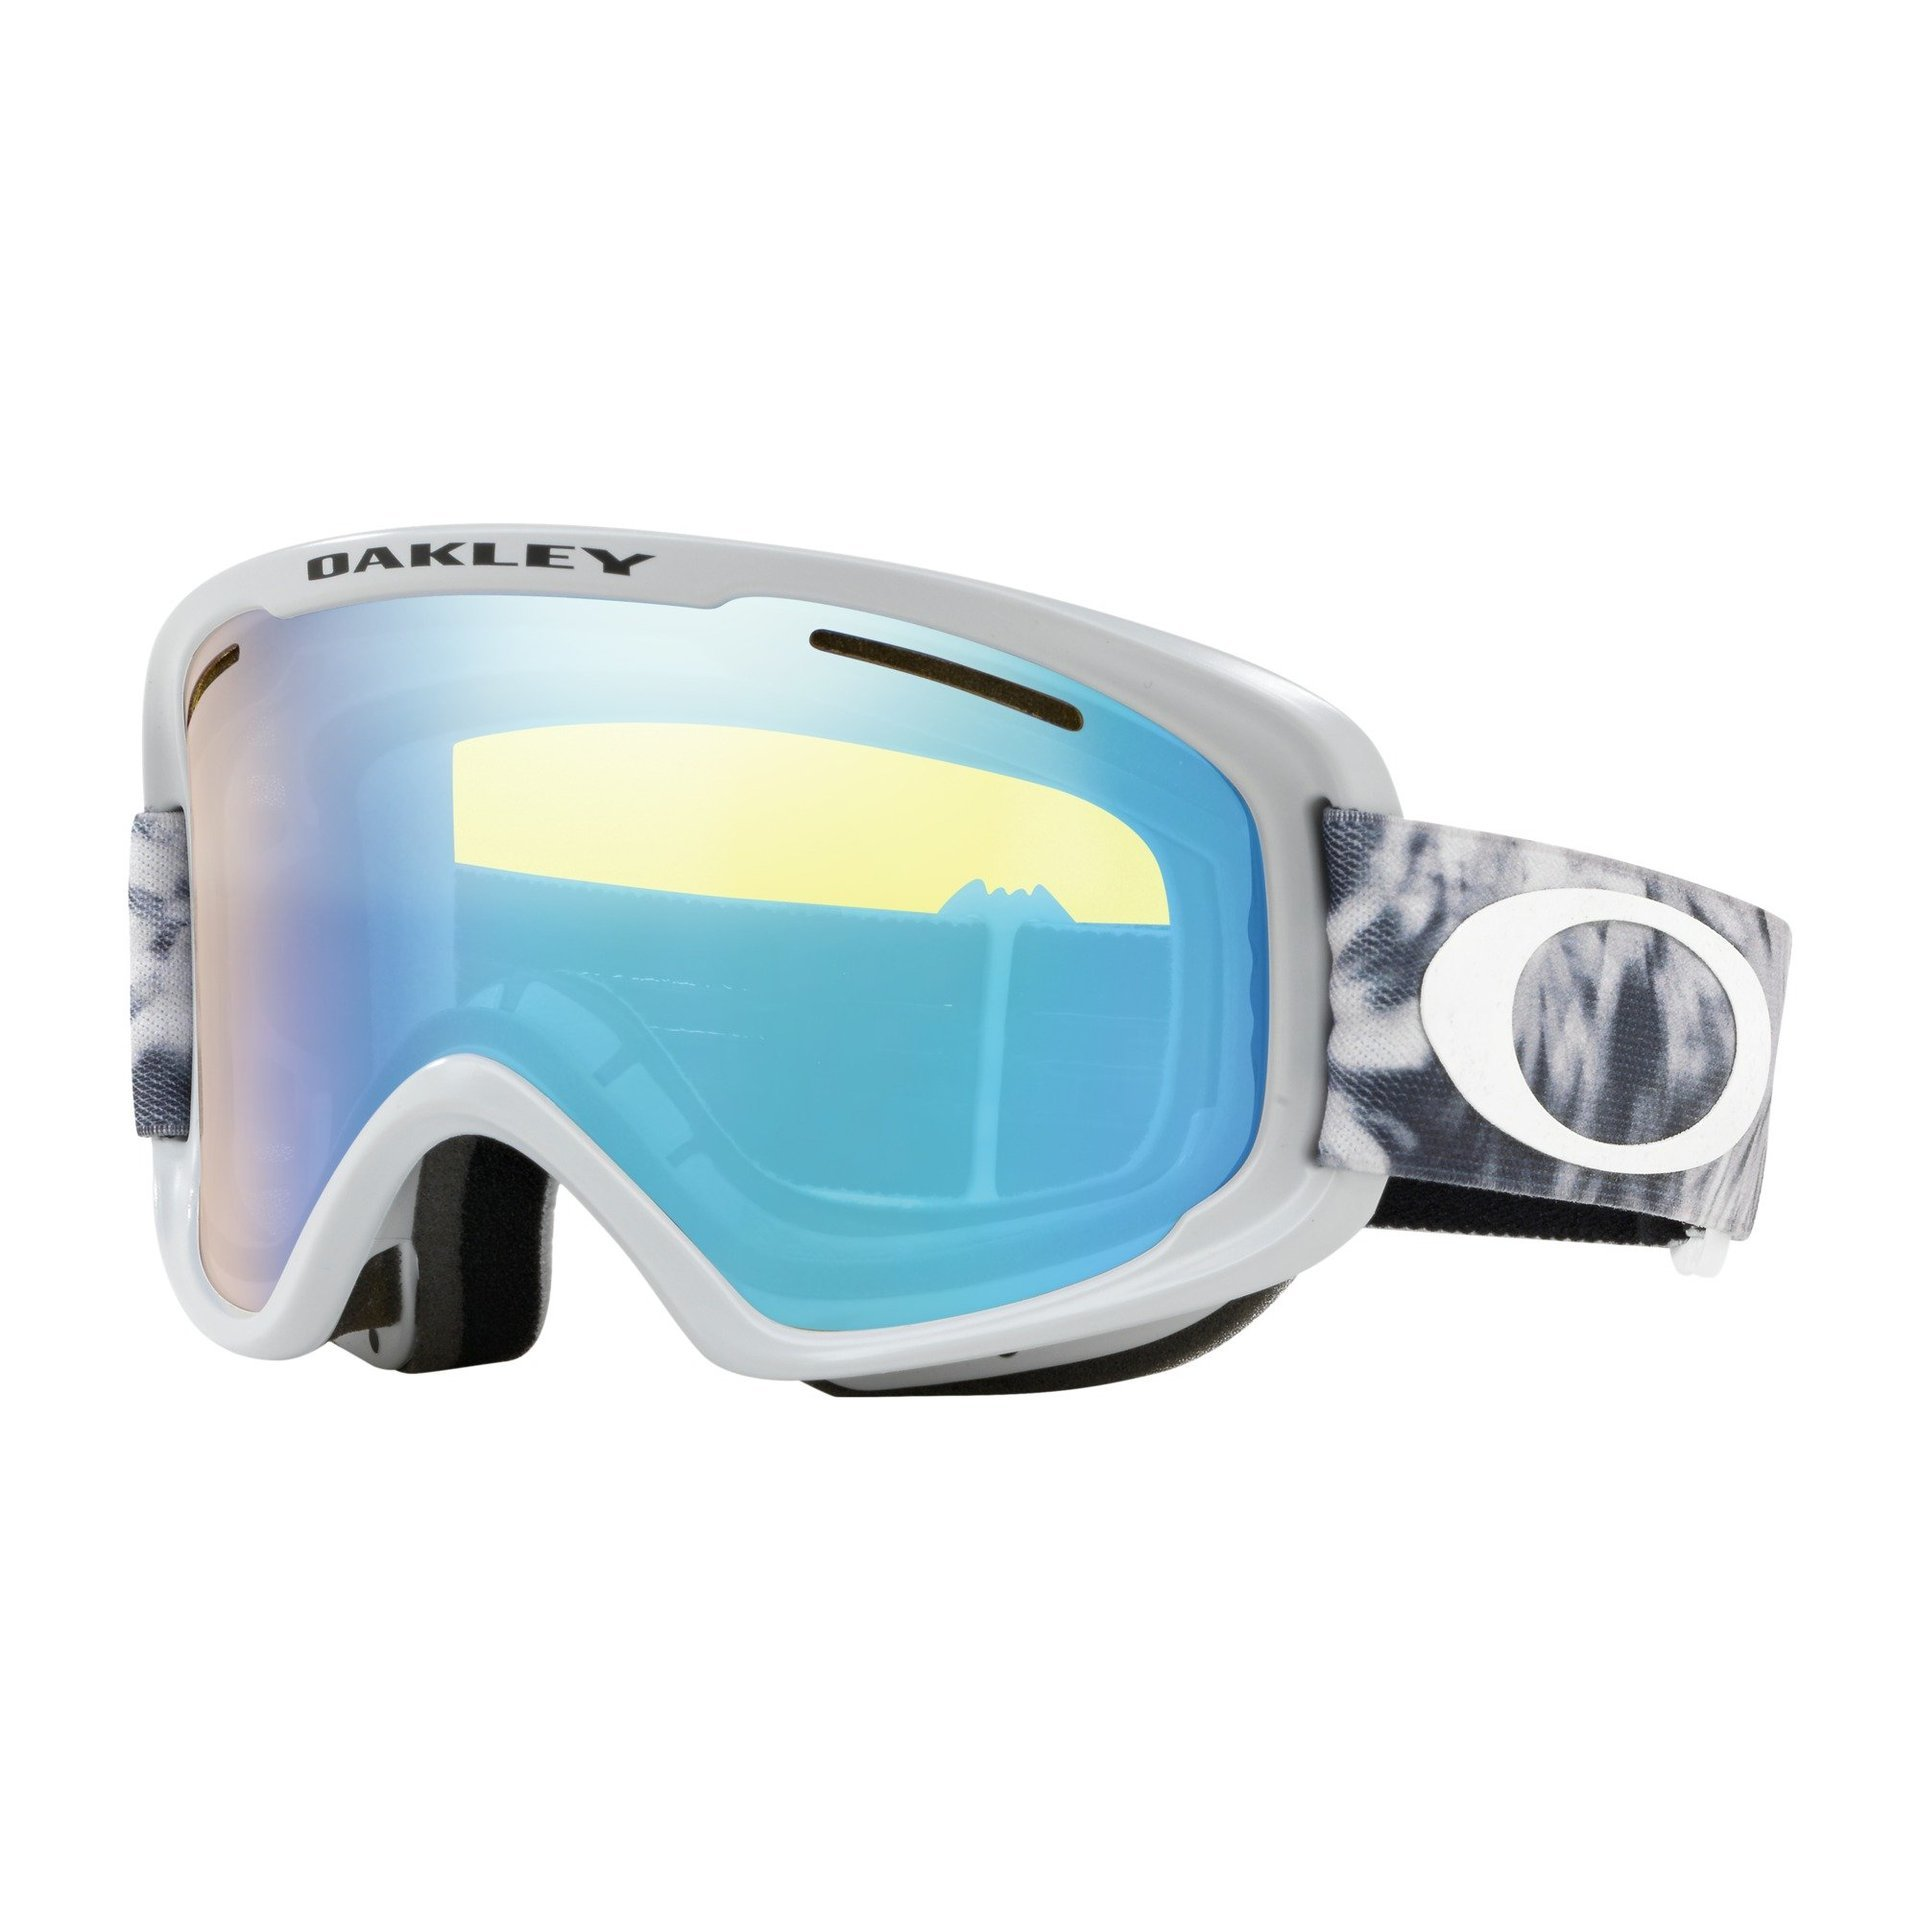 GOGLE OAKLEY O FRAME 2.0 XM TRANQ FLURY SHARKSKIN|HIGH INTENSITY YELLOW 1